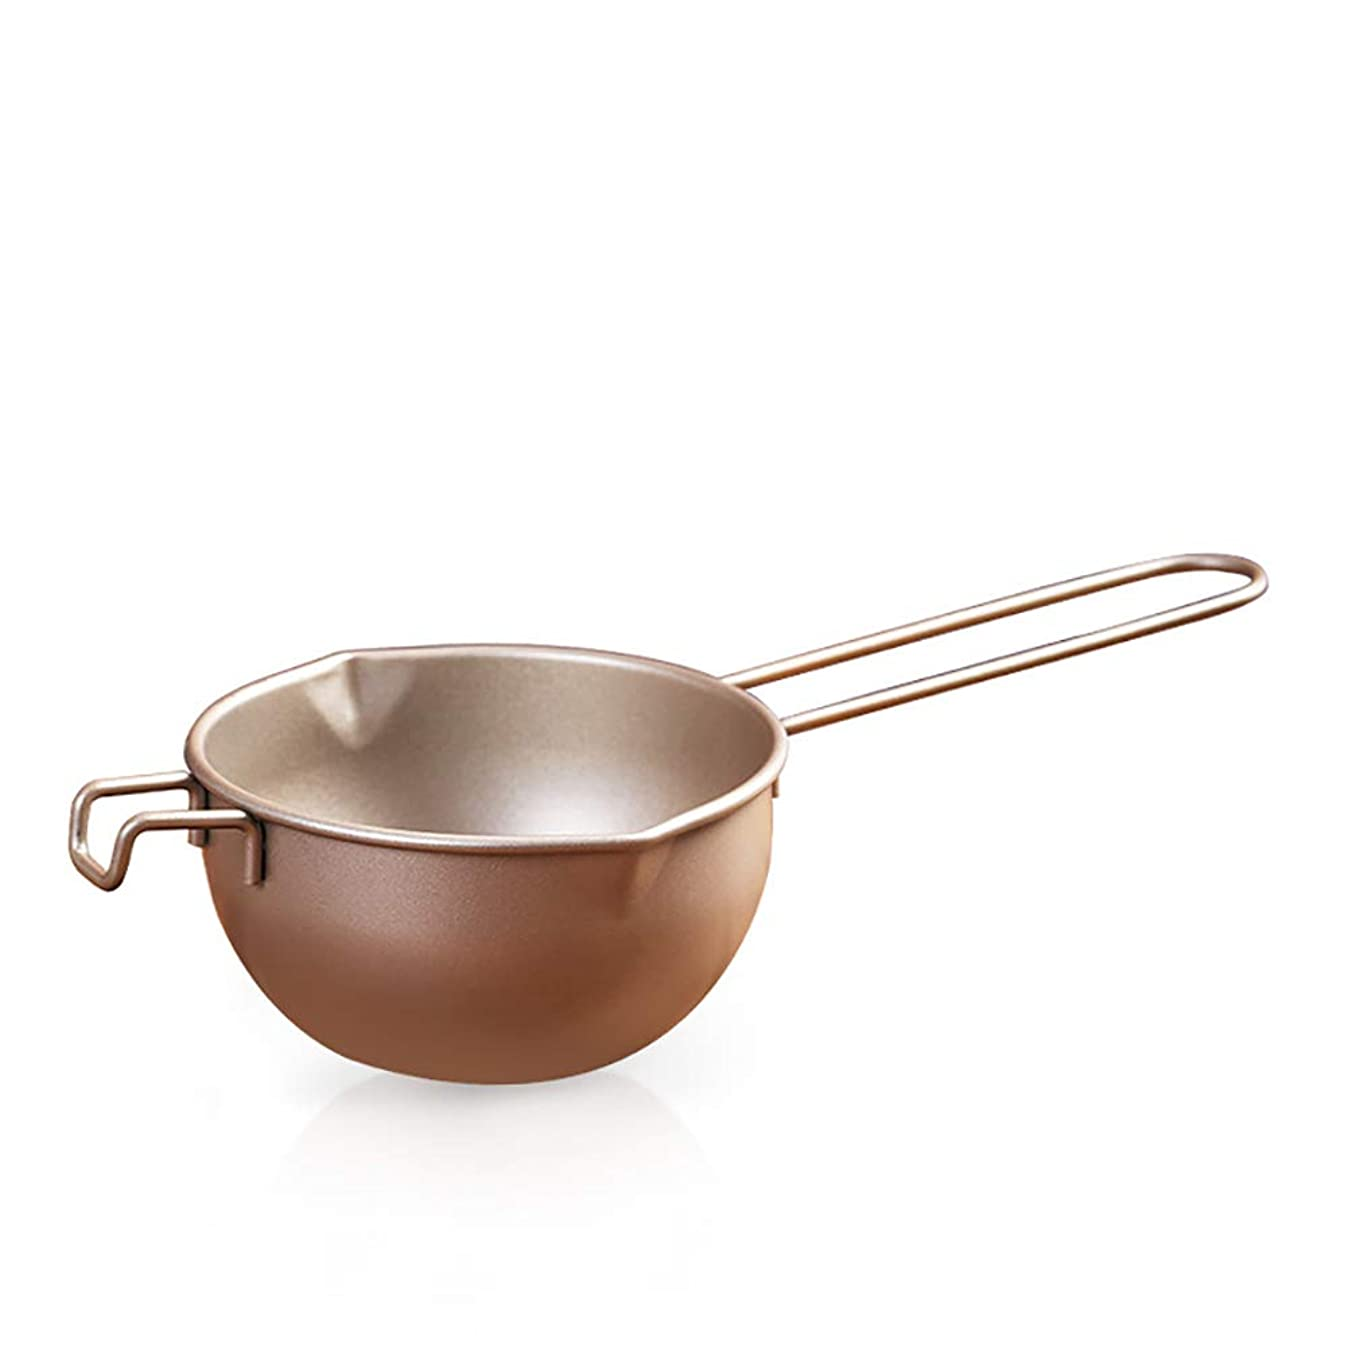 Chocolate Melting Pot, Non-Stick Coating Double Boiler Insert Baking Tools 450 Ml Mask,Melted Butter Chocolate